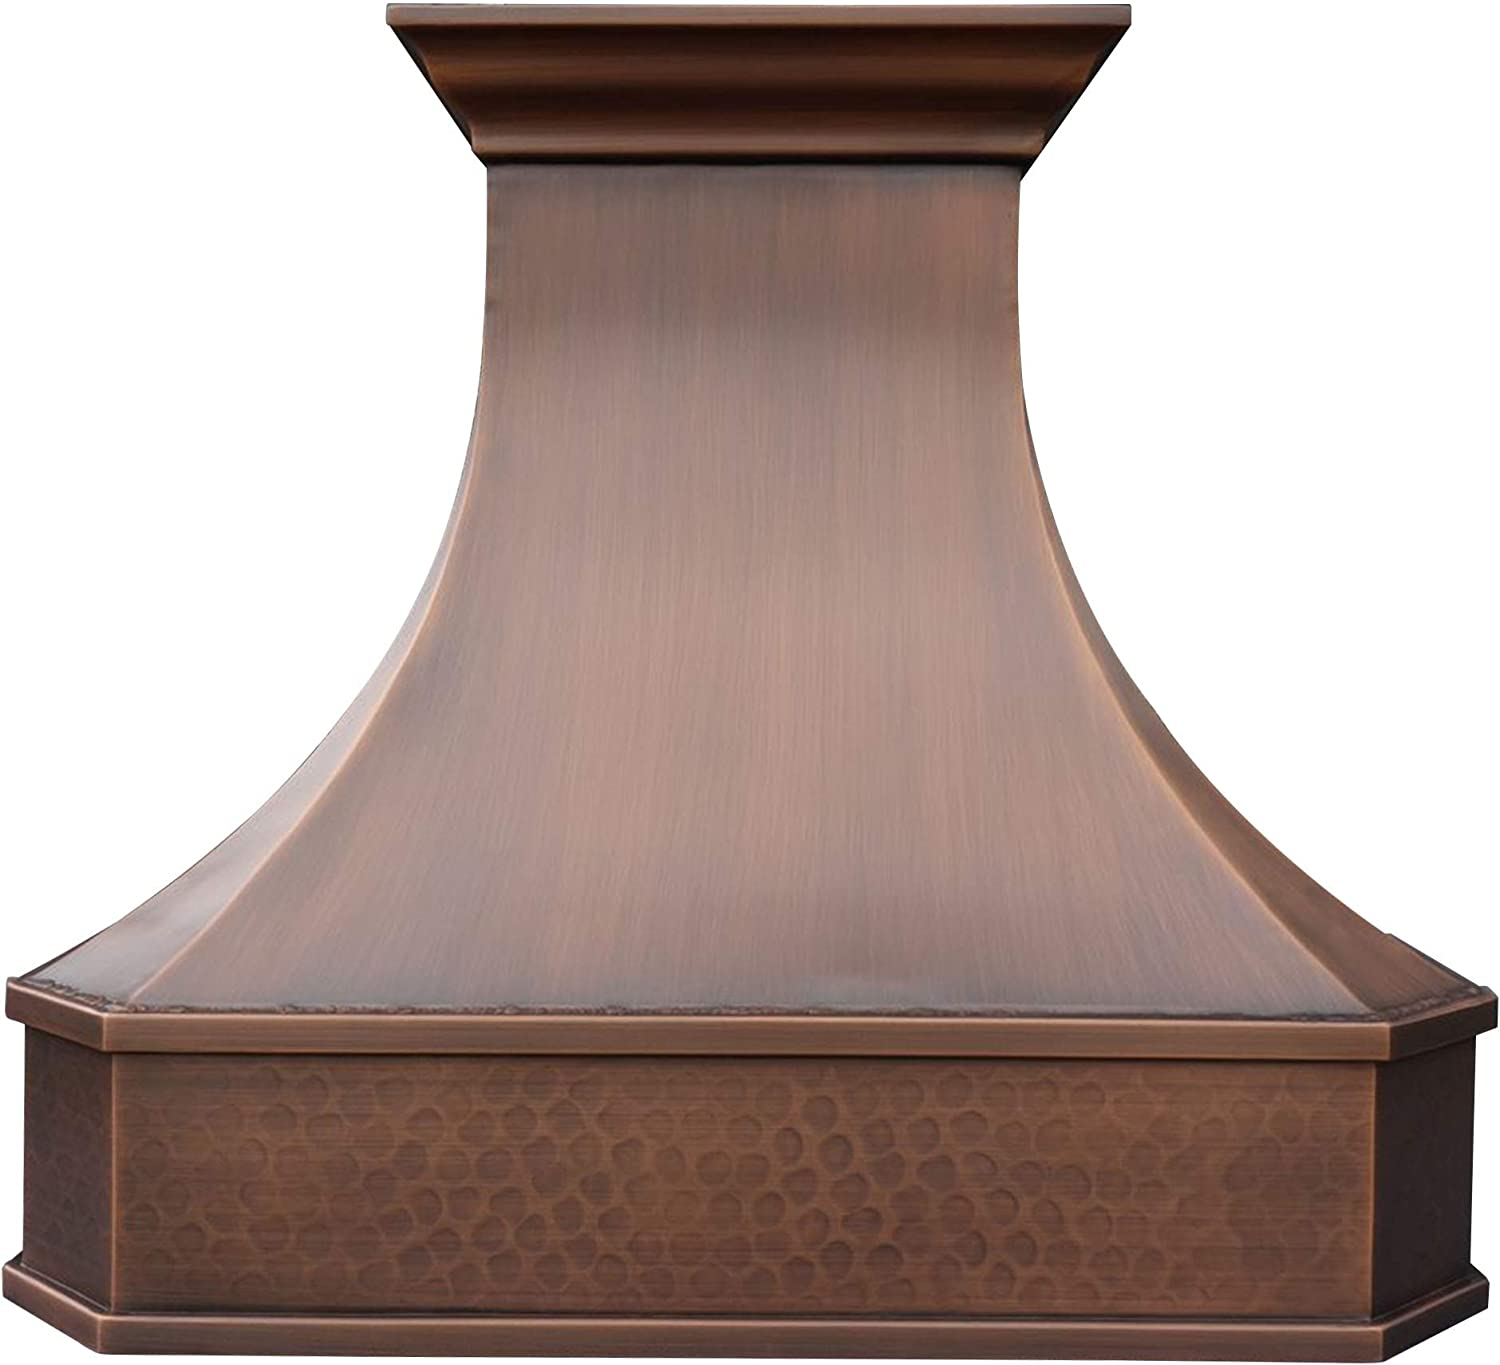 """SINDA Classic Hammered Solid Copper Range Hood with High Airflow Cenrtifugal Blower, Stainless Steal Vent with Liner and Internal Motor, Baffle Filter, 30""""Wx27""""H, H3SLI3027"""